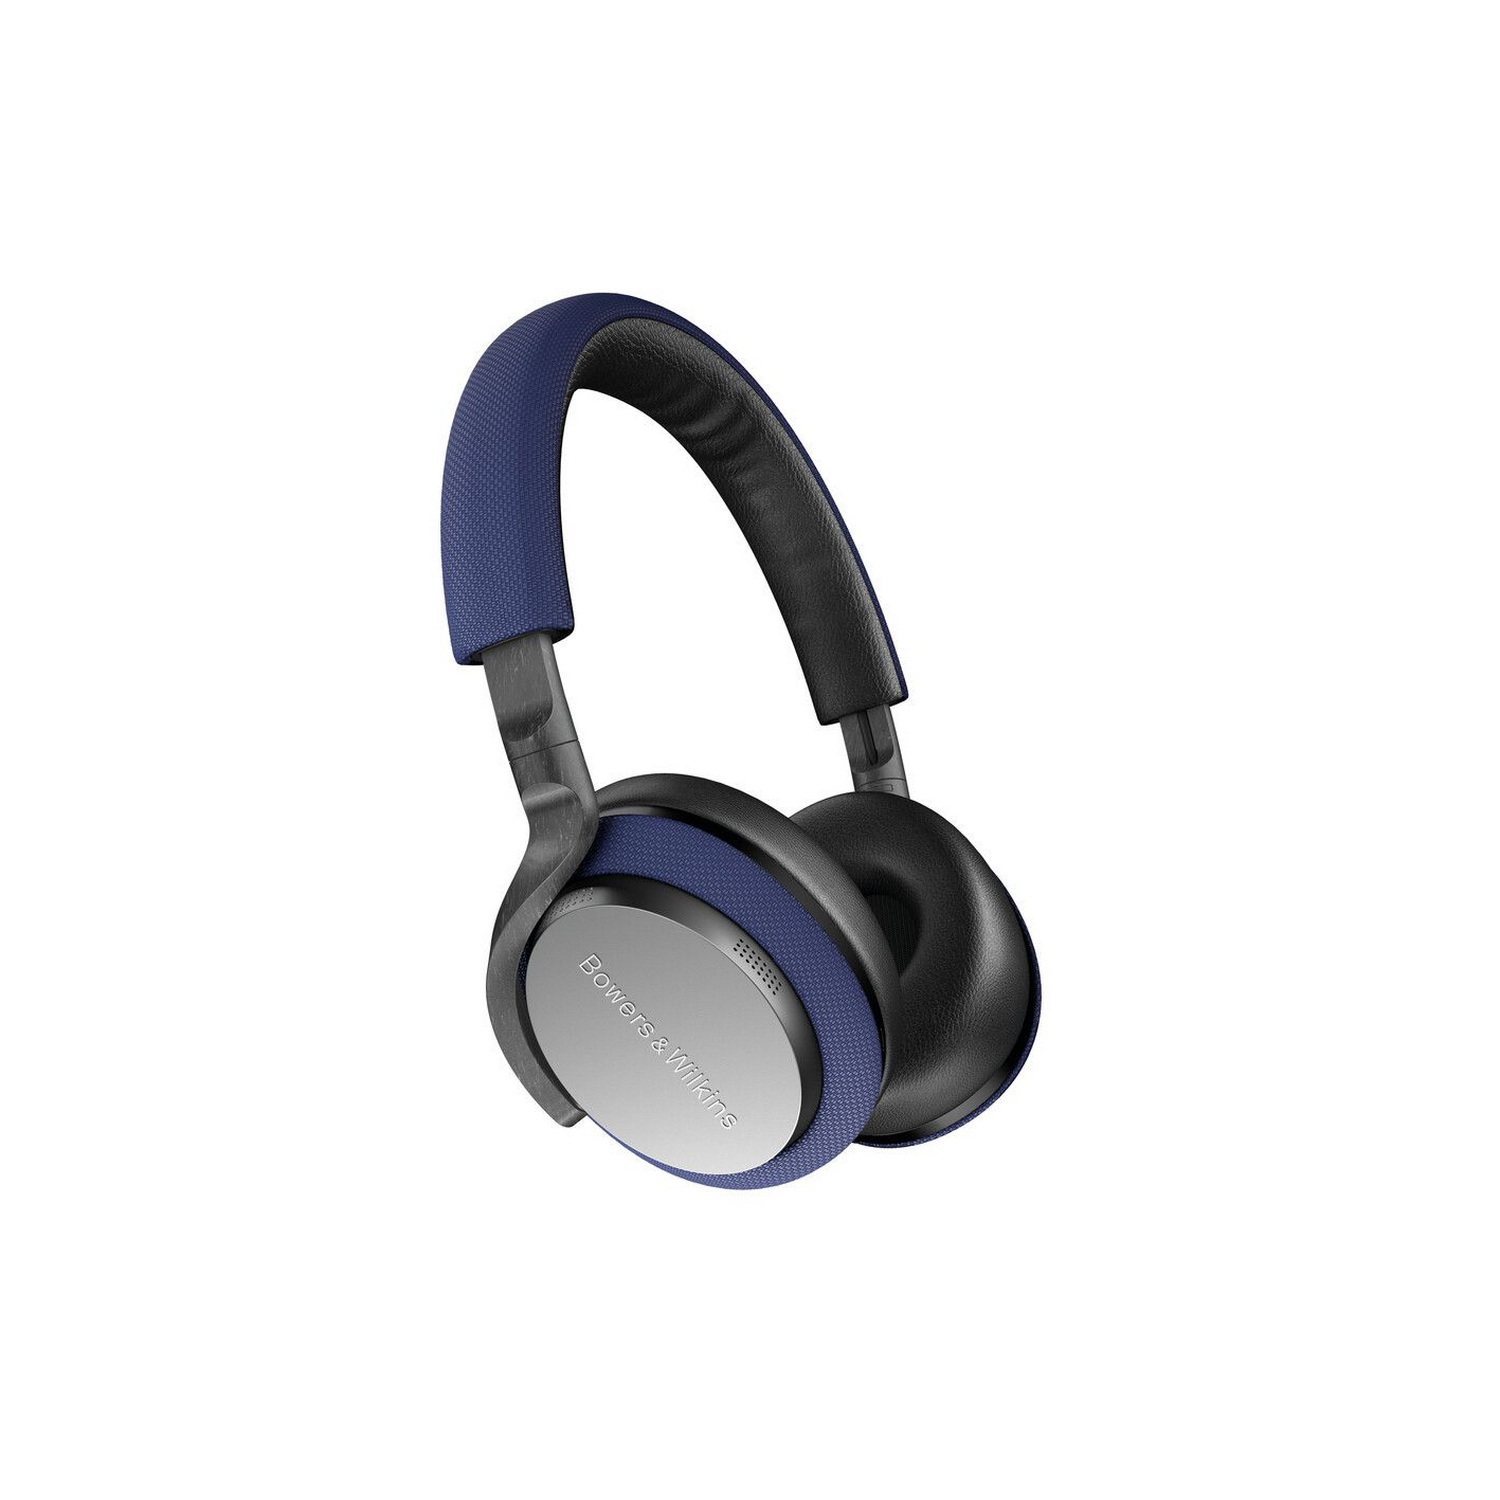 B&W PX5 Wireless Headphones blau FP41173